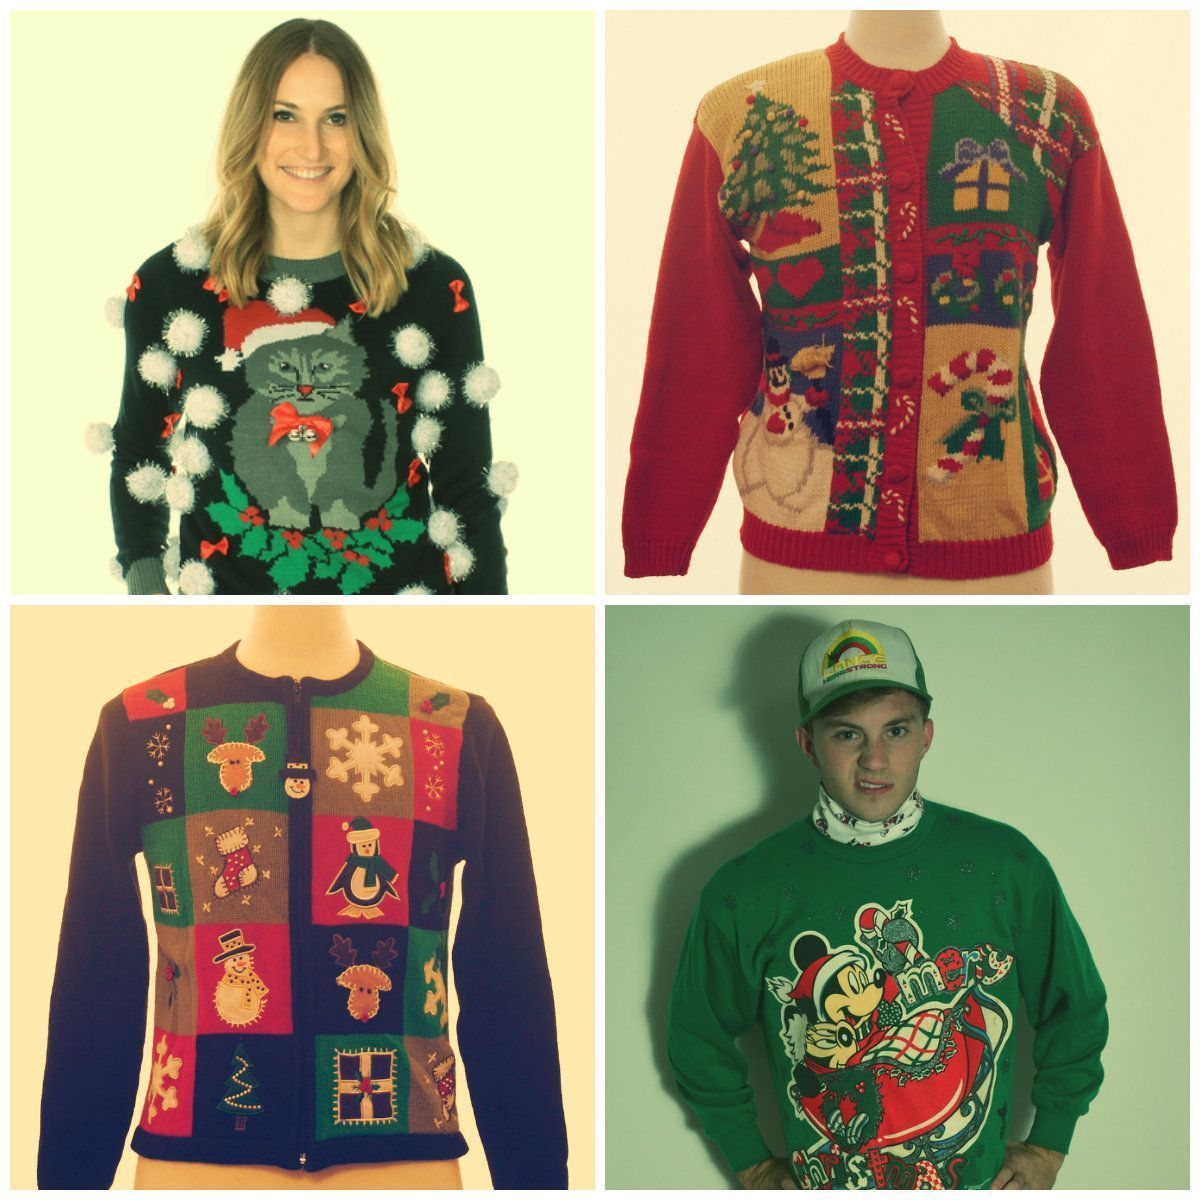 The Top 15 Ugliest Christmas Sweater Ever